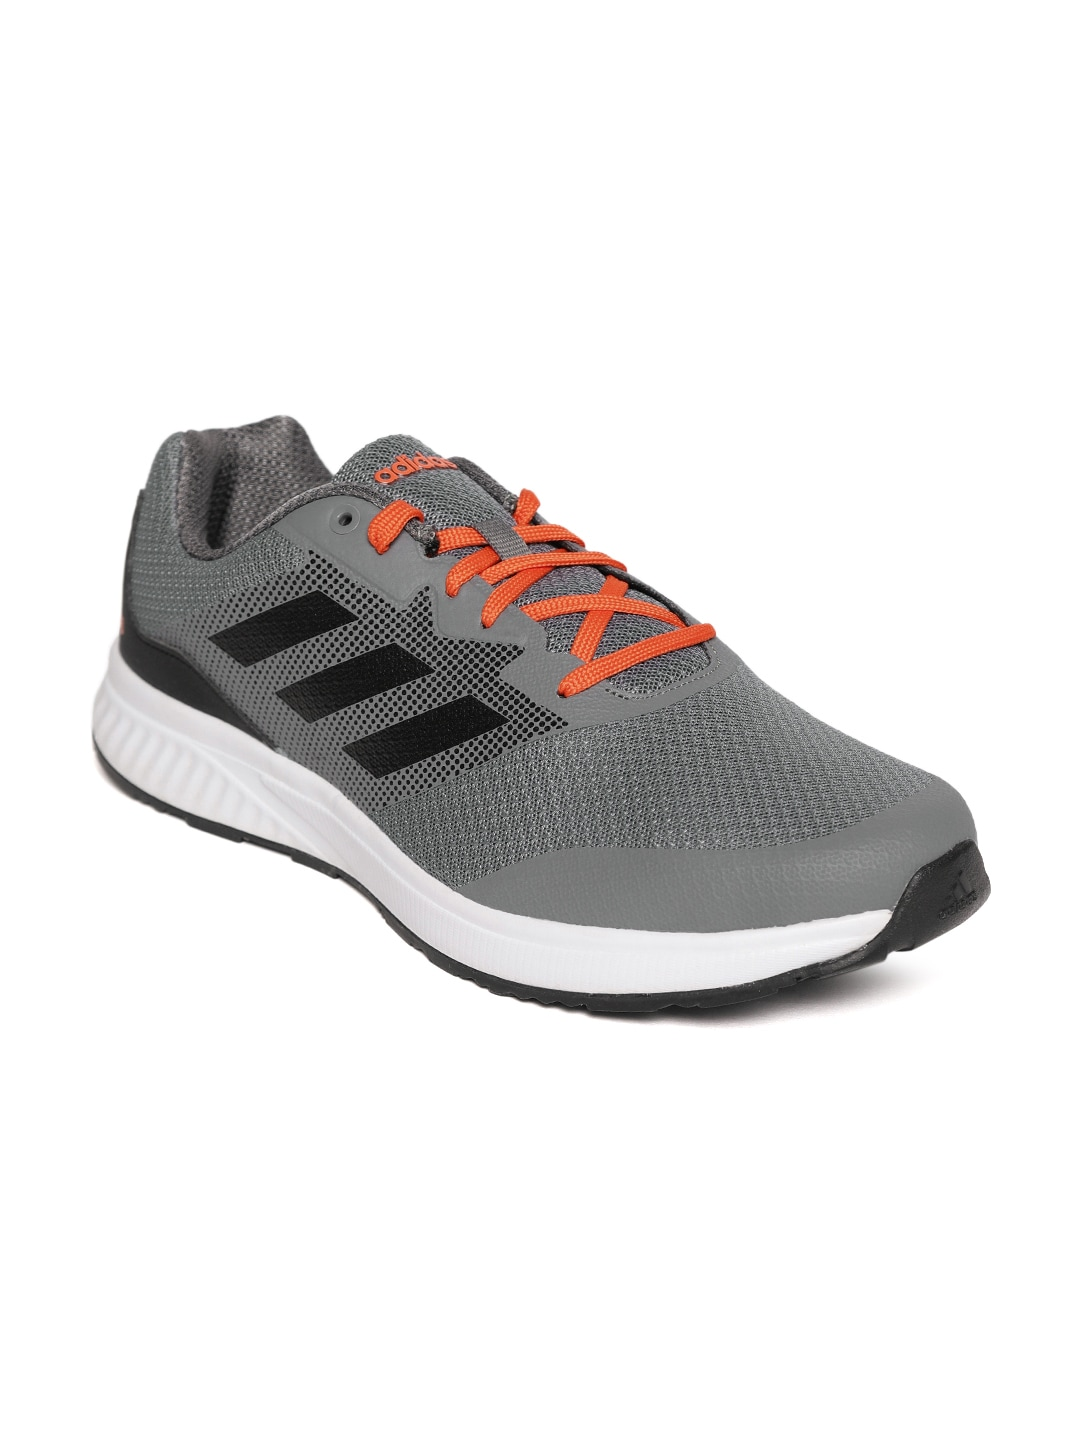 17dbf58ada318c Men Footwear - Buy Mens Footwear   Shoes Online in India - Myntra